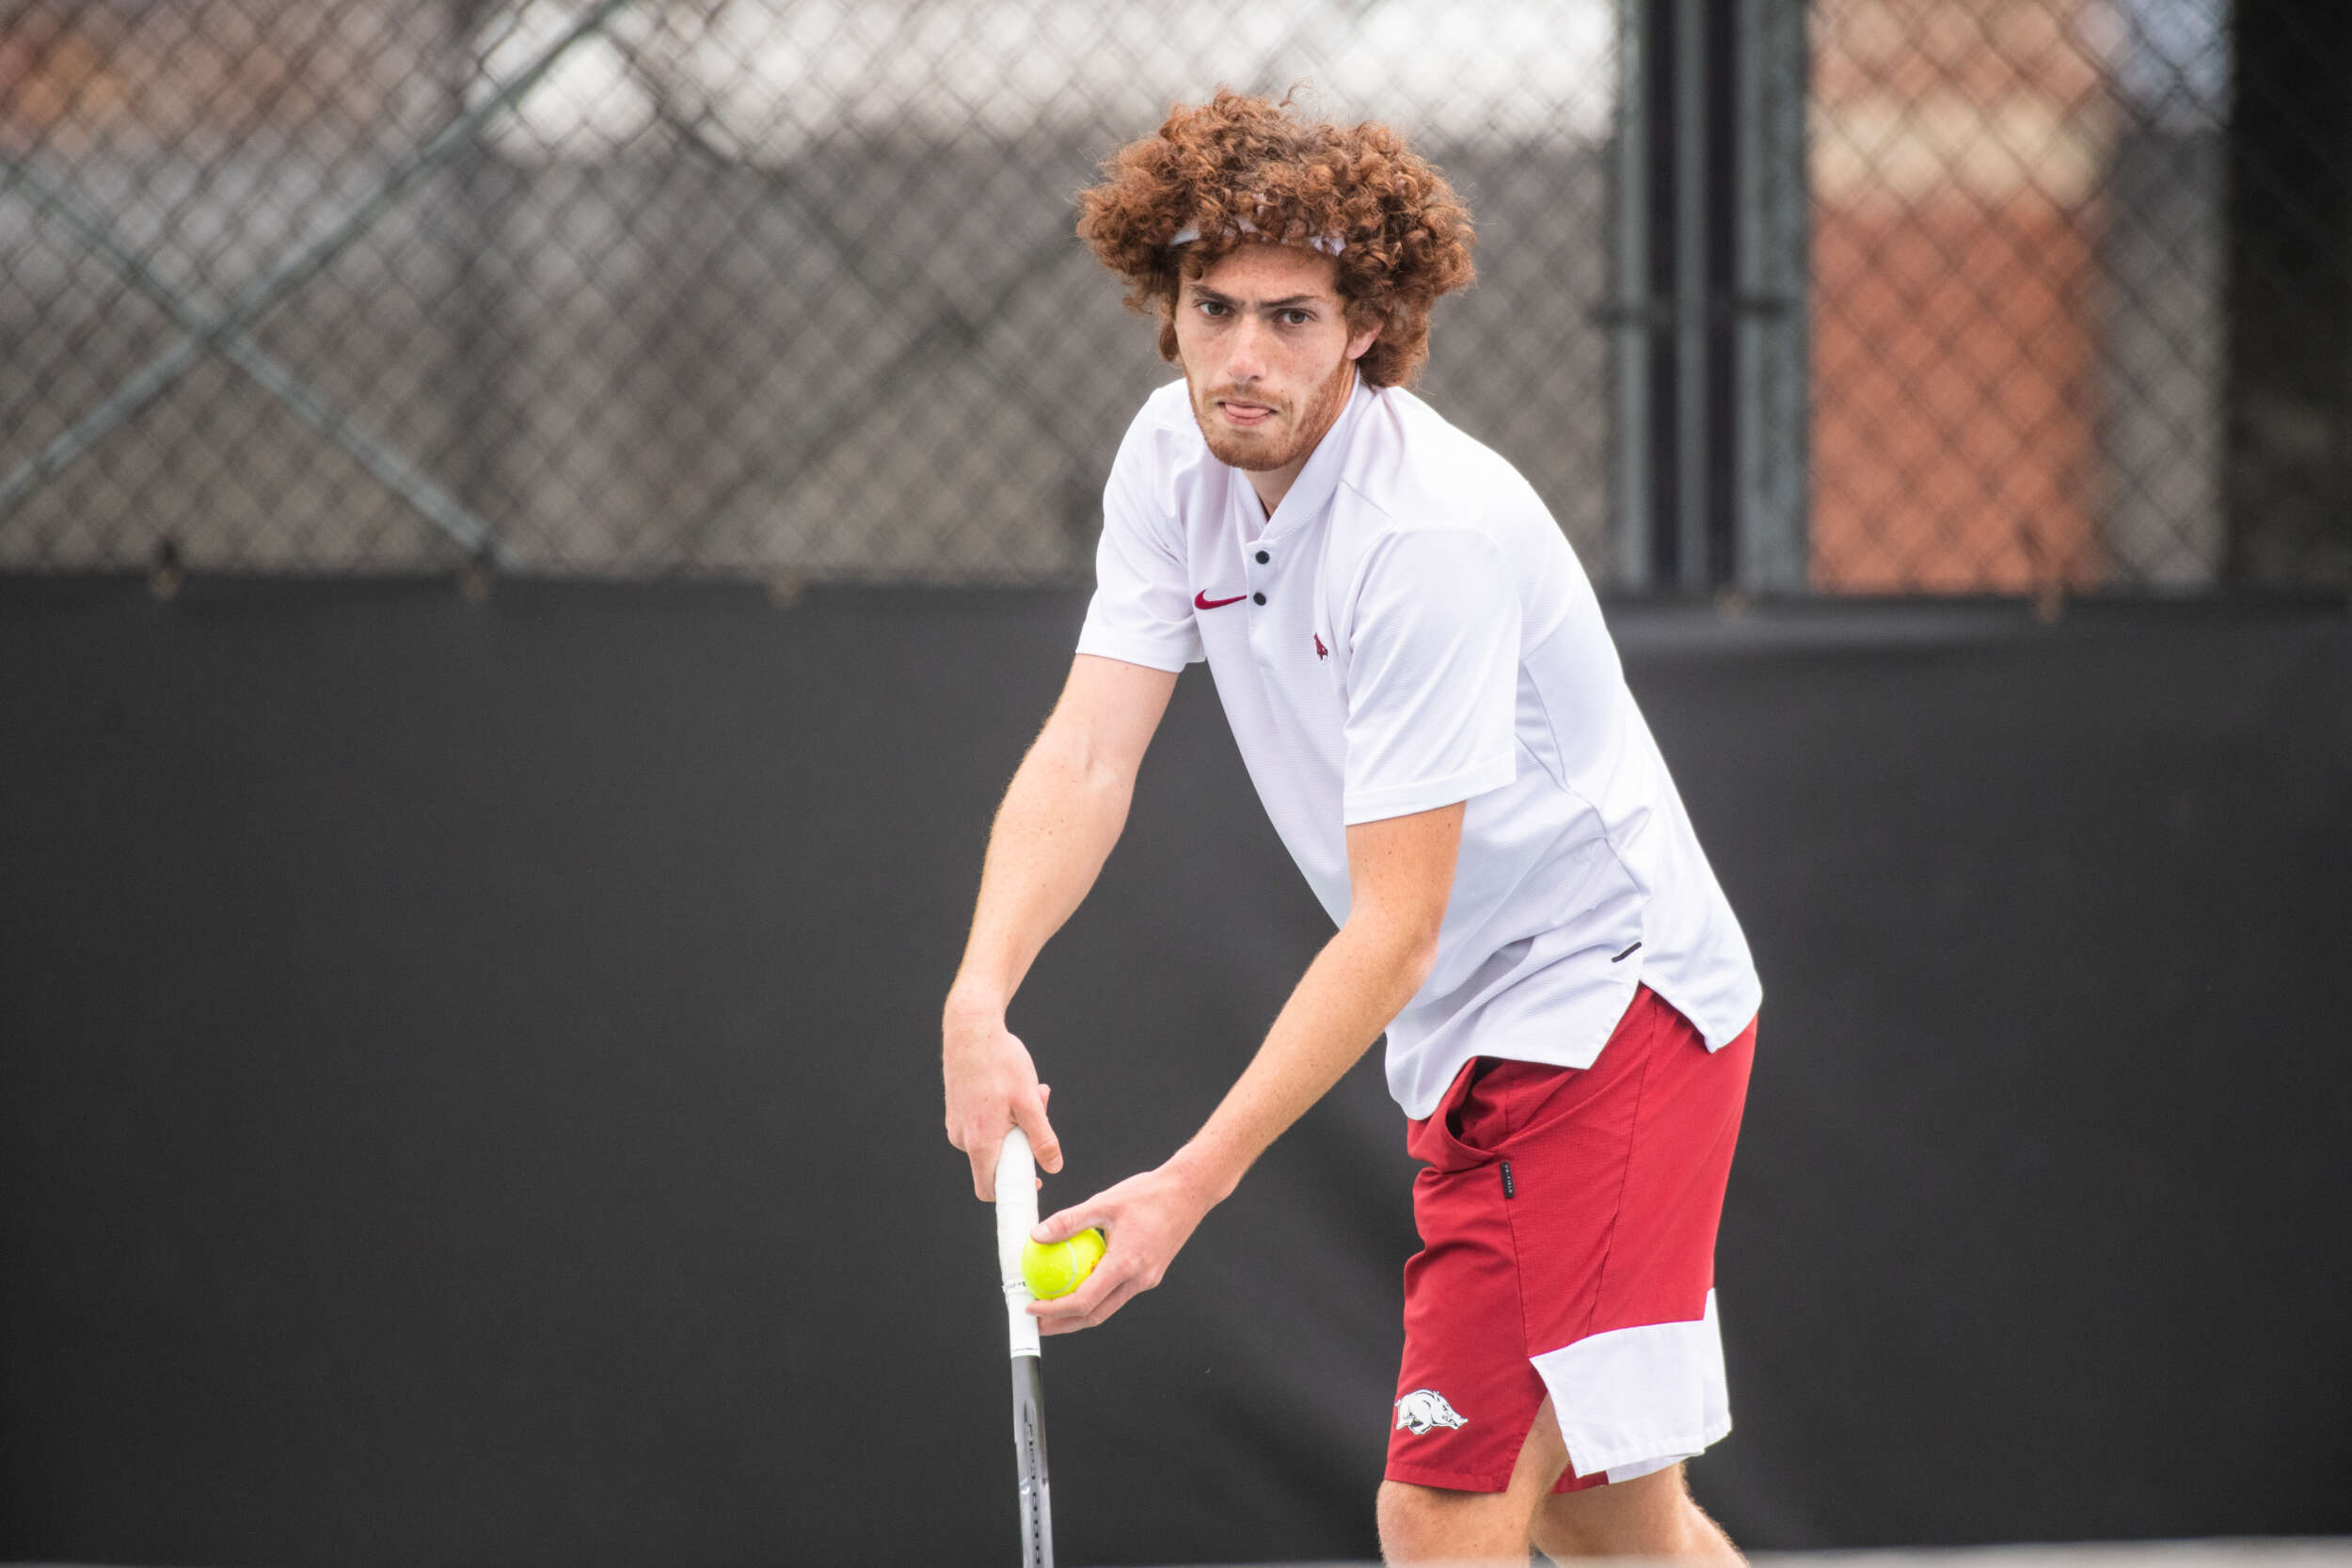 Hogs Prevail as Doubles Champions in Home ITF Event